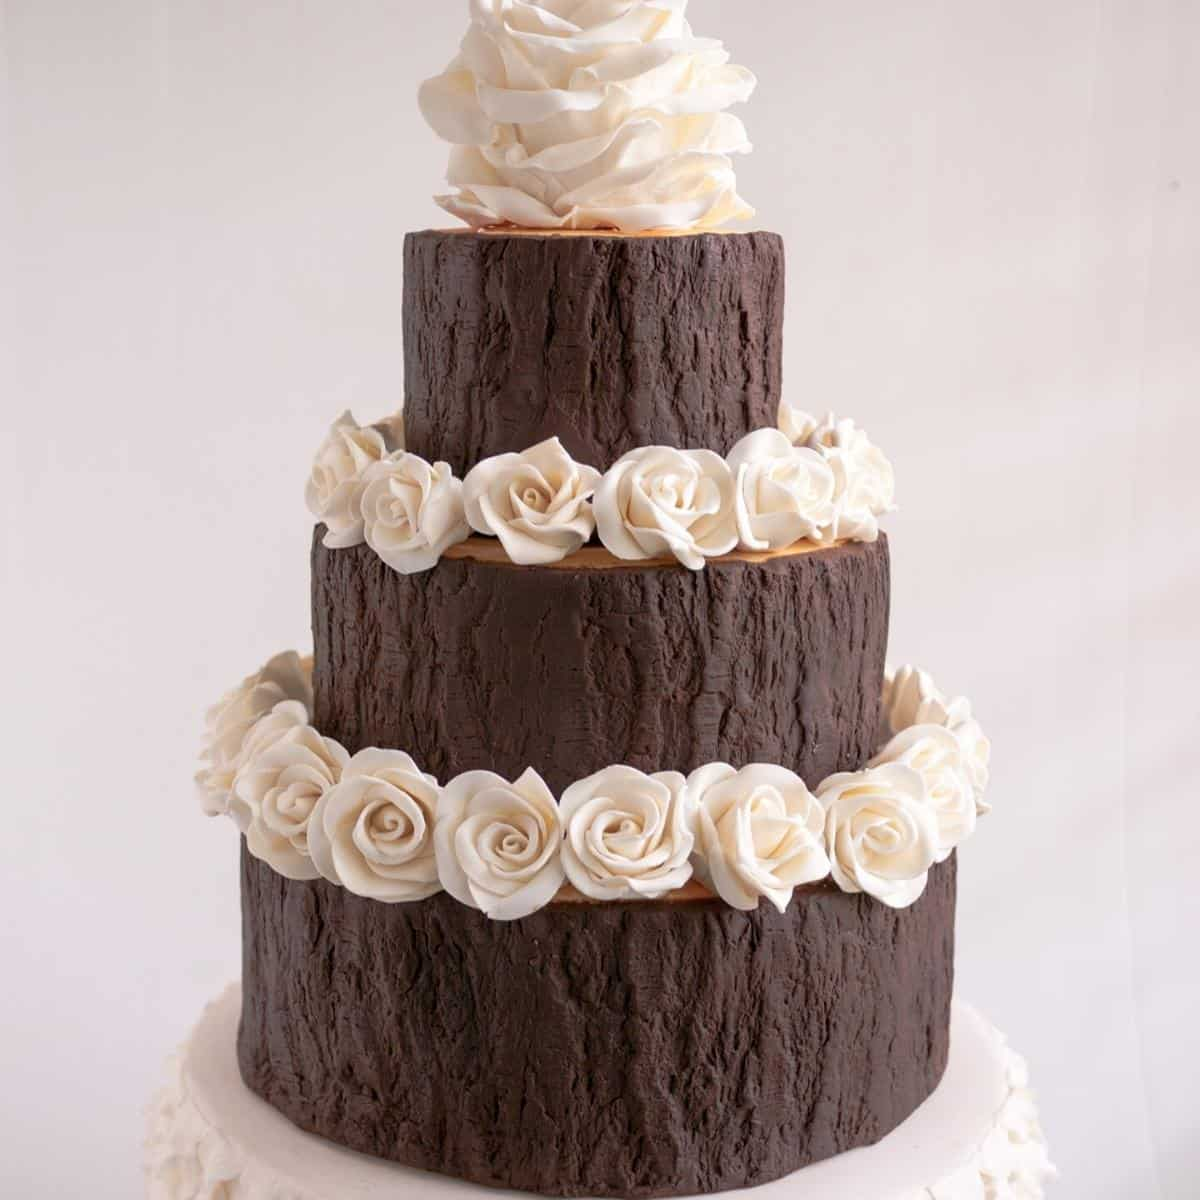 A three tier cake covered with modeling chocolate.